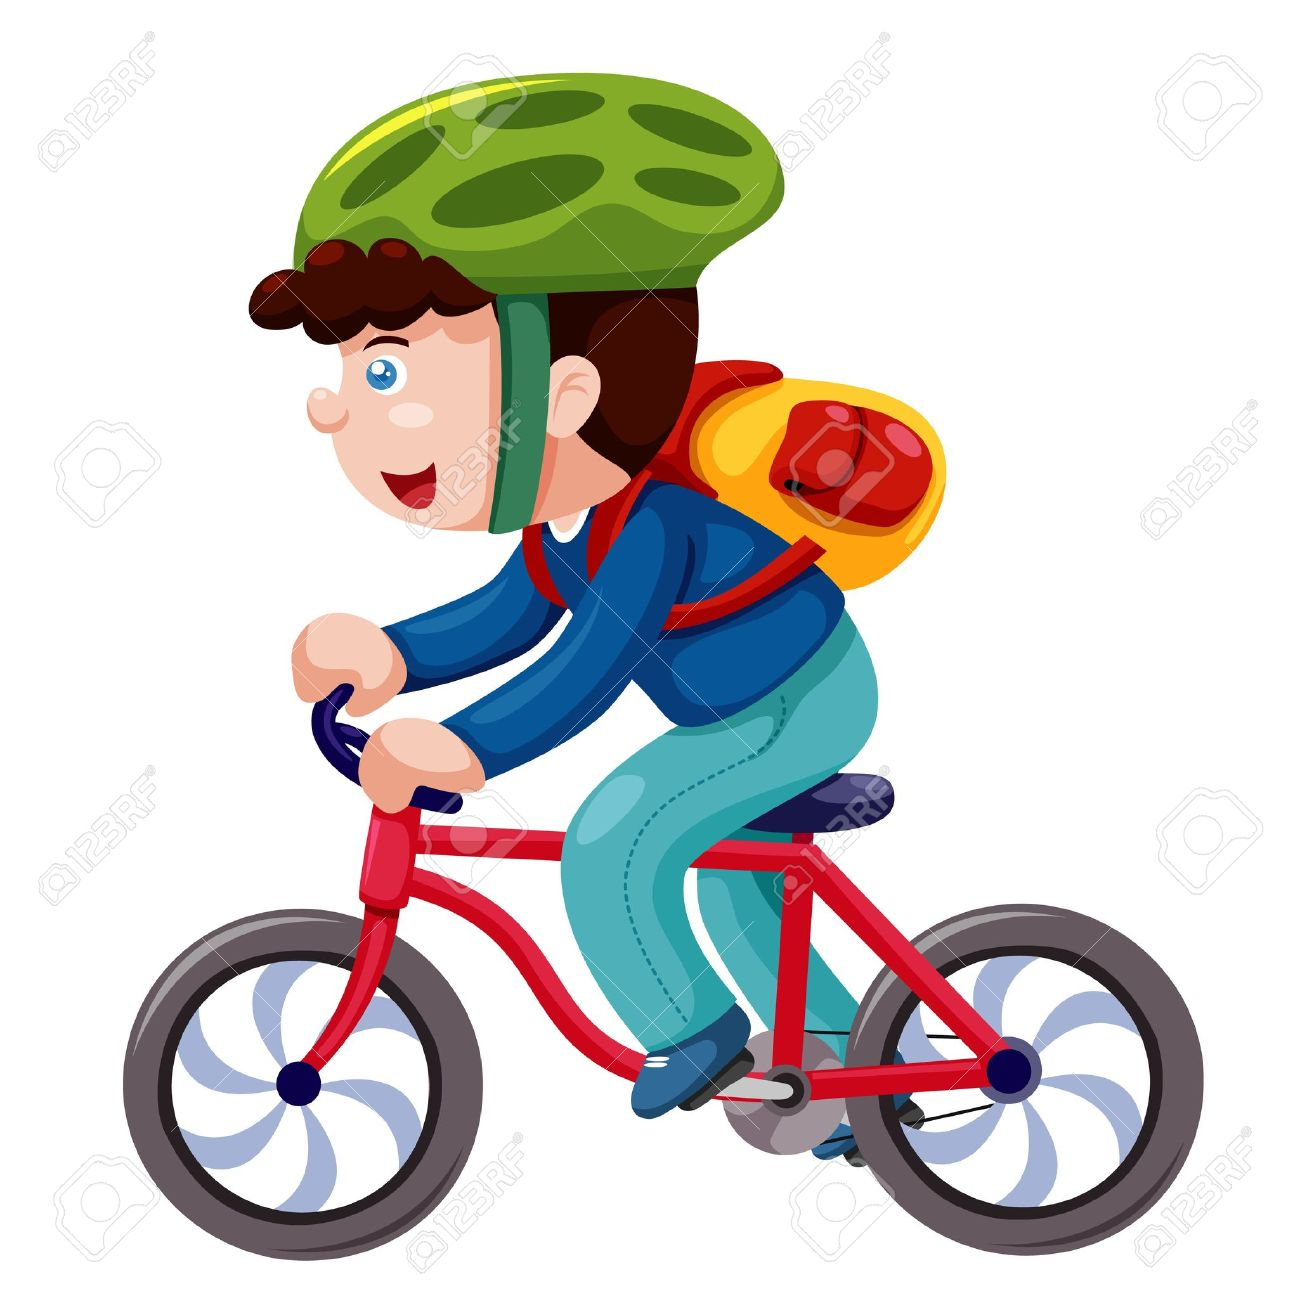 Boy on a bicycle vector Stock Vector - 14884261